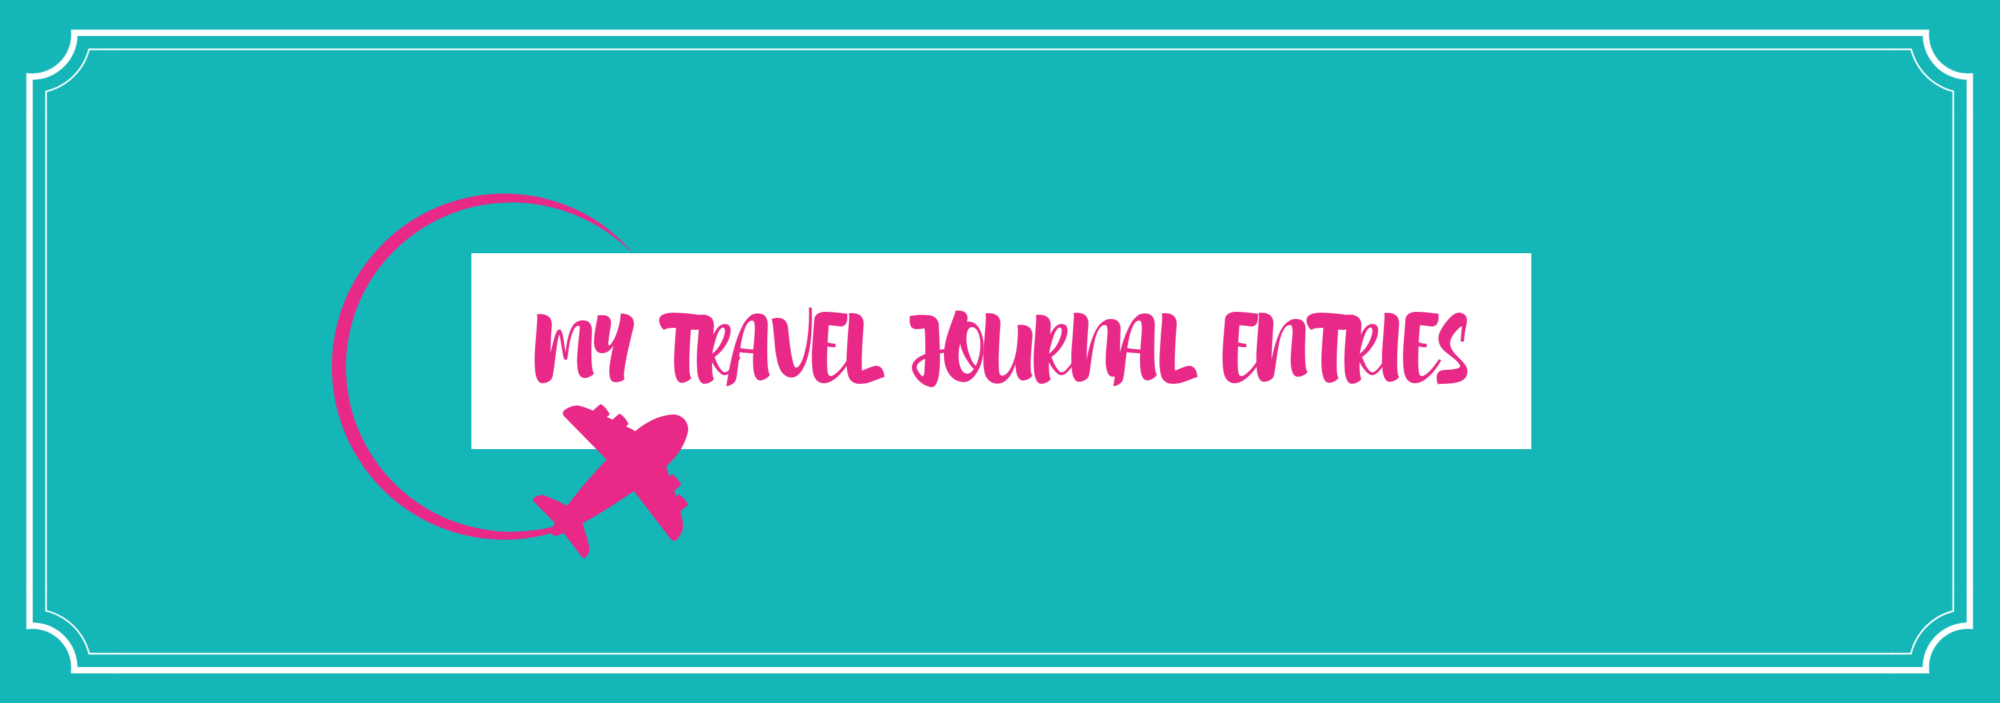 Travel Journal Entries banner